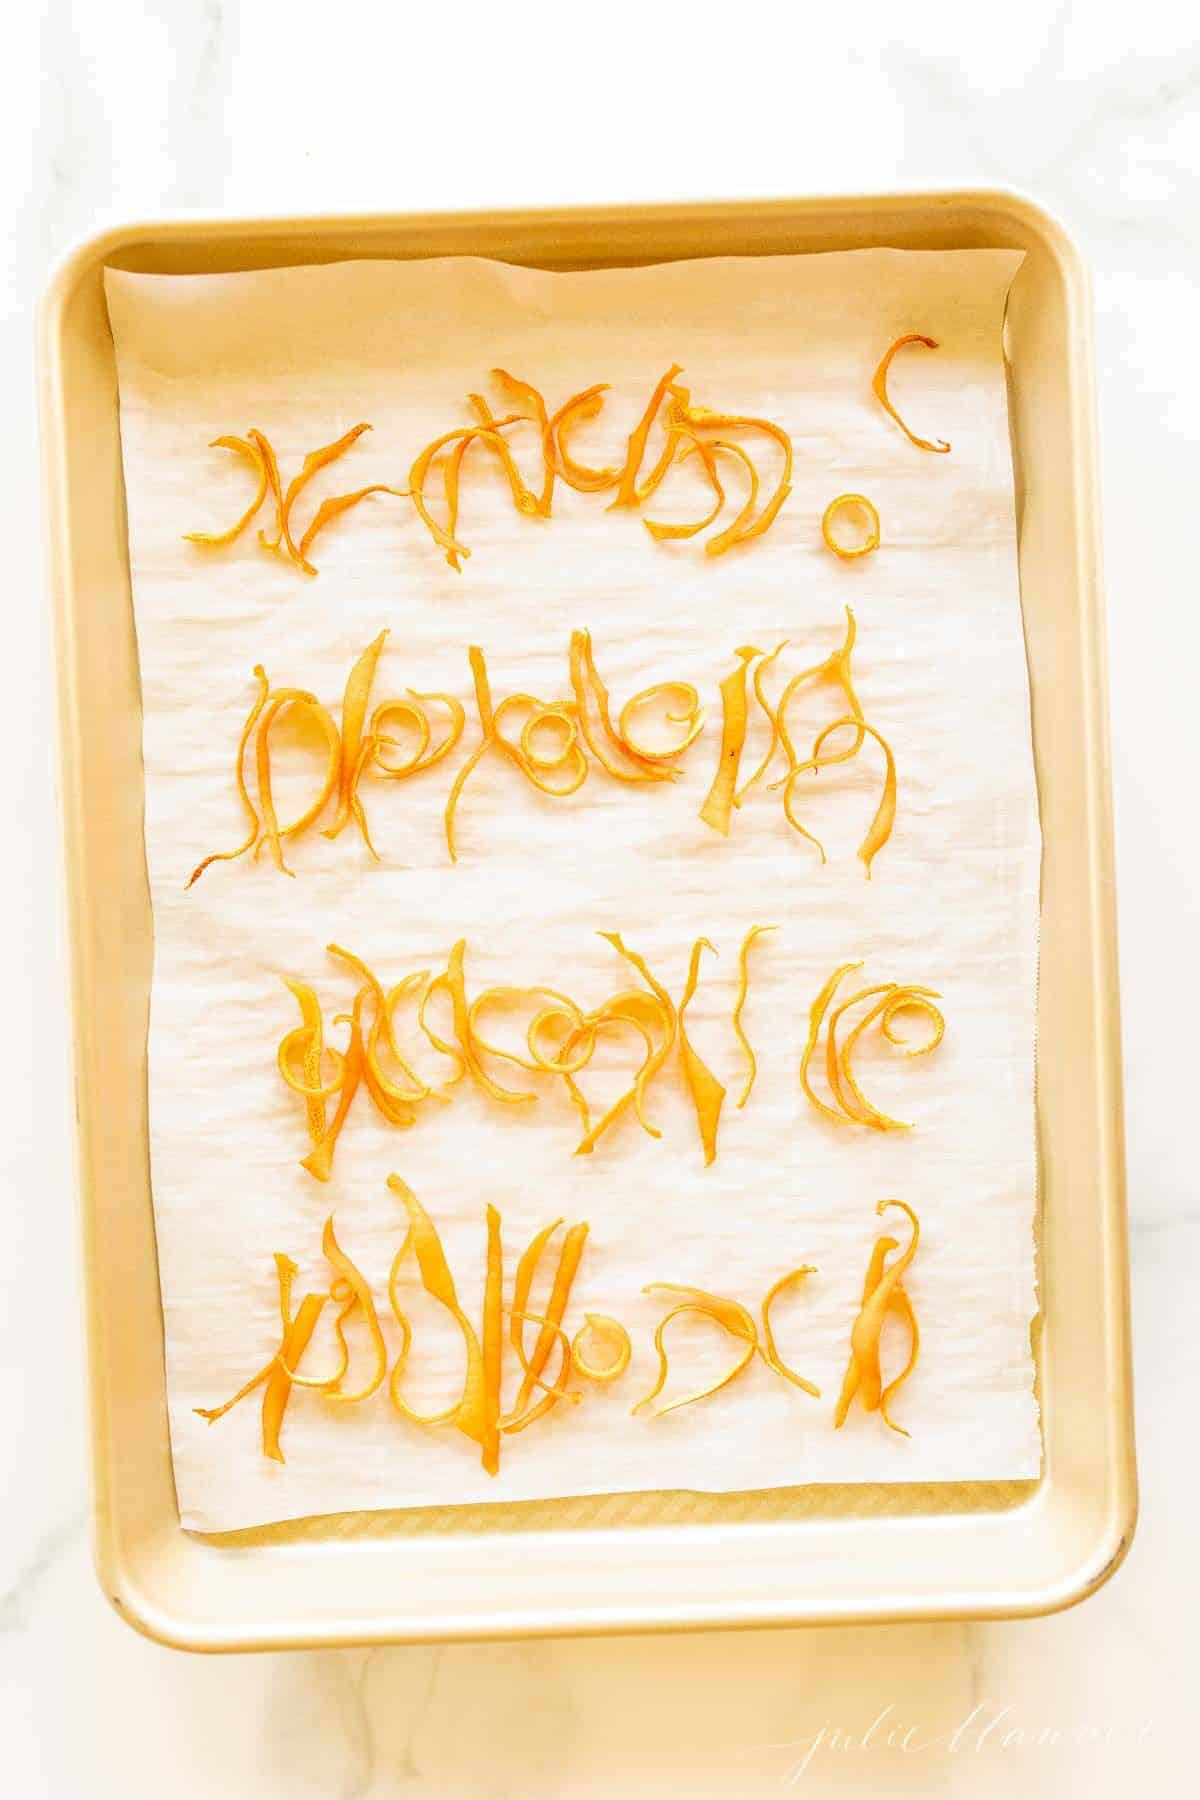 A gold sheet pan lined with parchment paper and covered in dried orange peels.